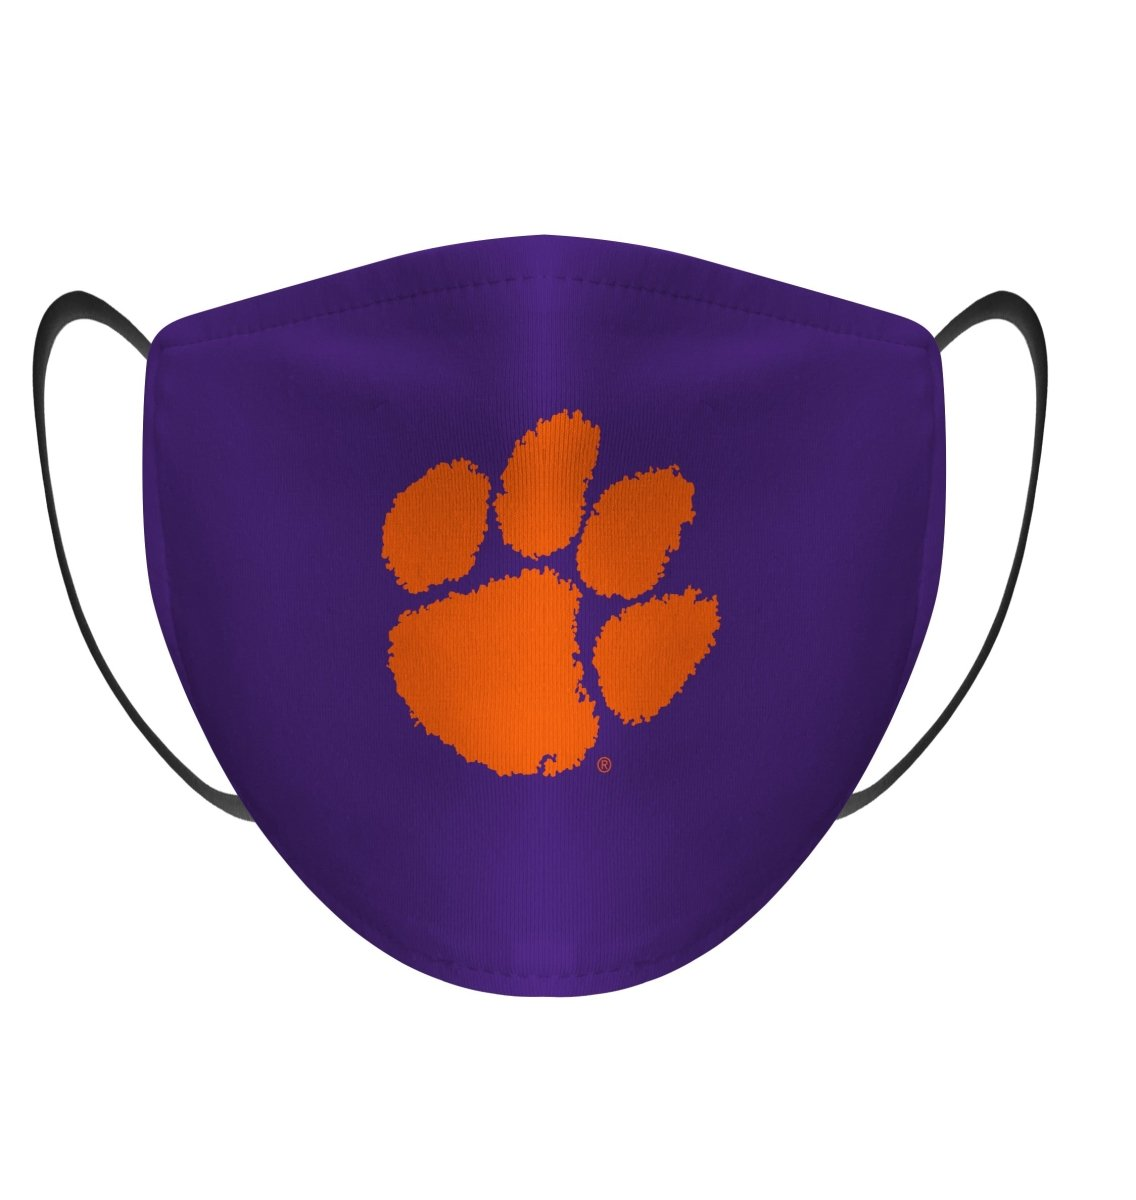 Rock 'Em Face Mask- Solid Purple with Orange Paw - Mr. Knickerbocker